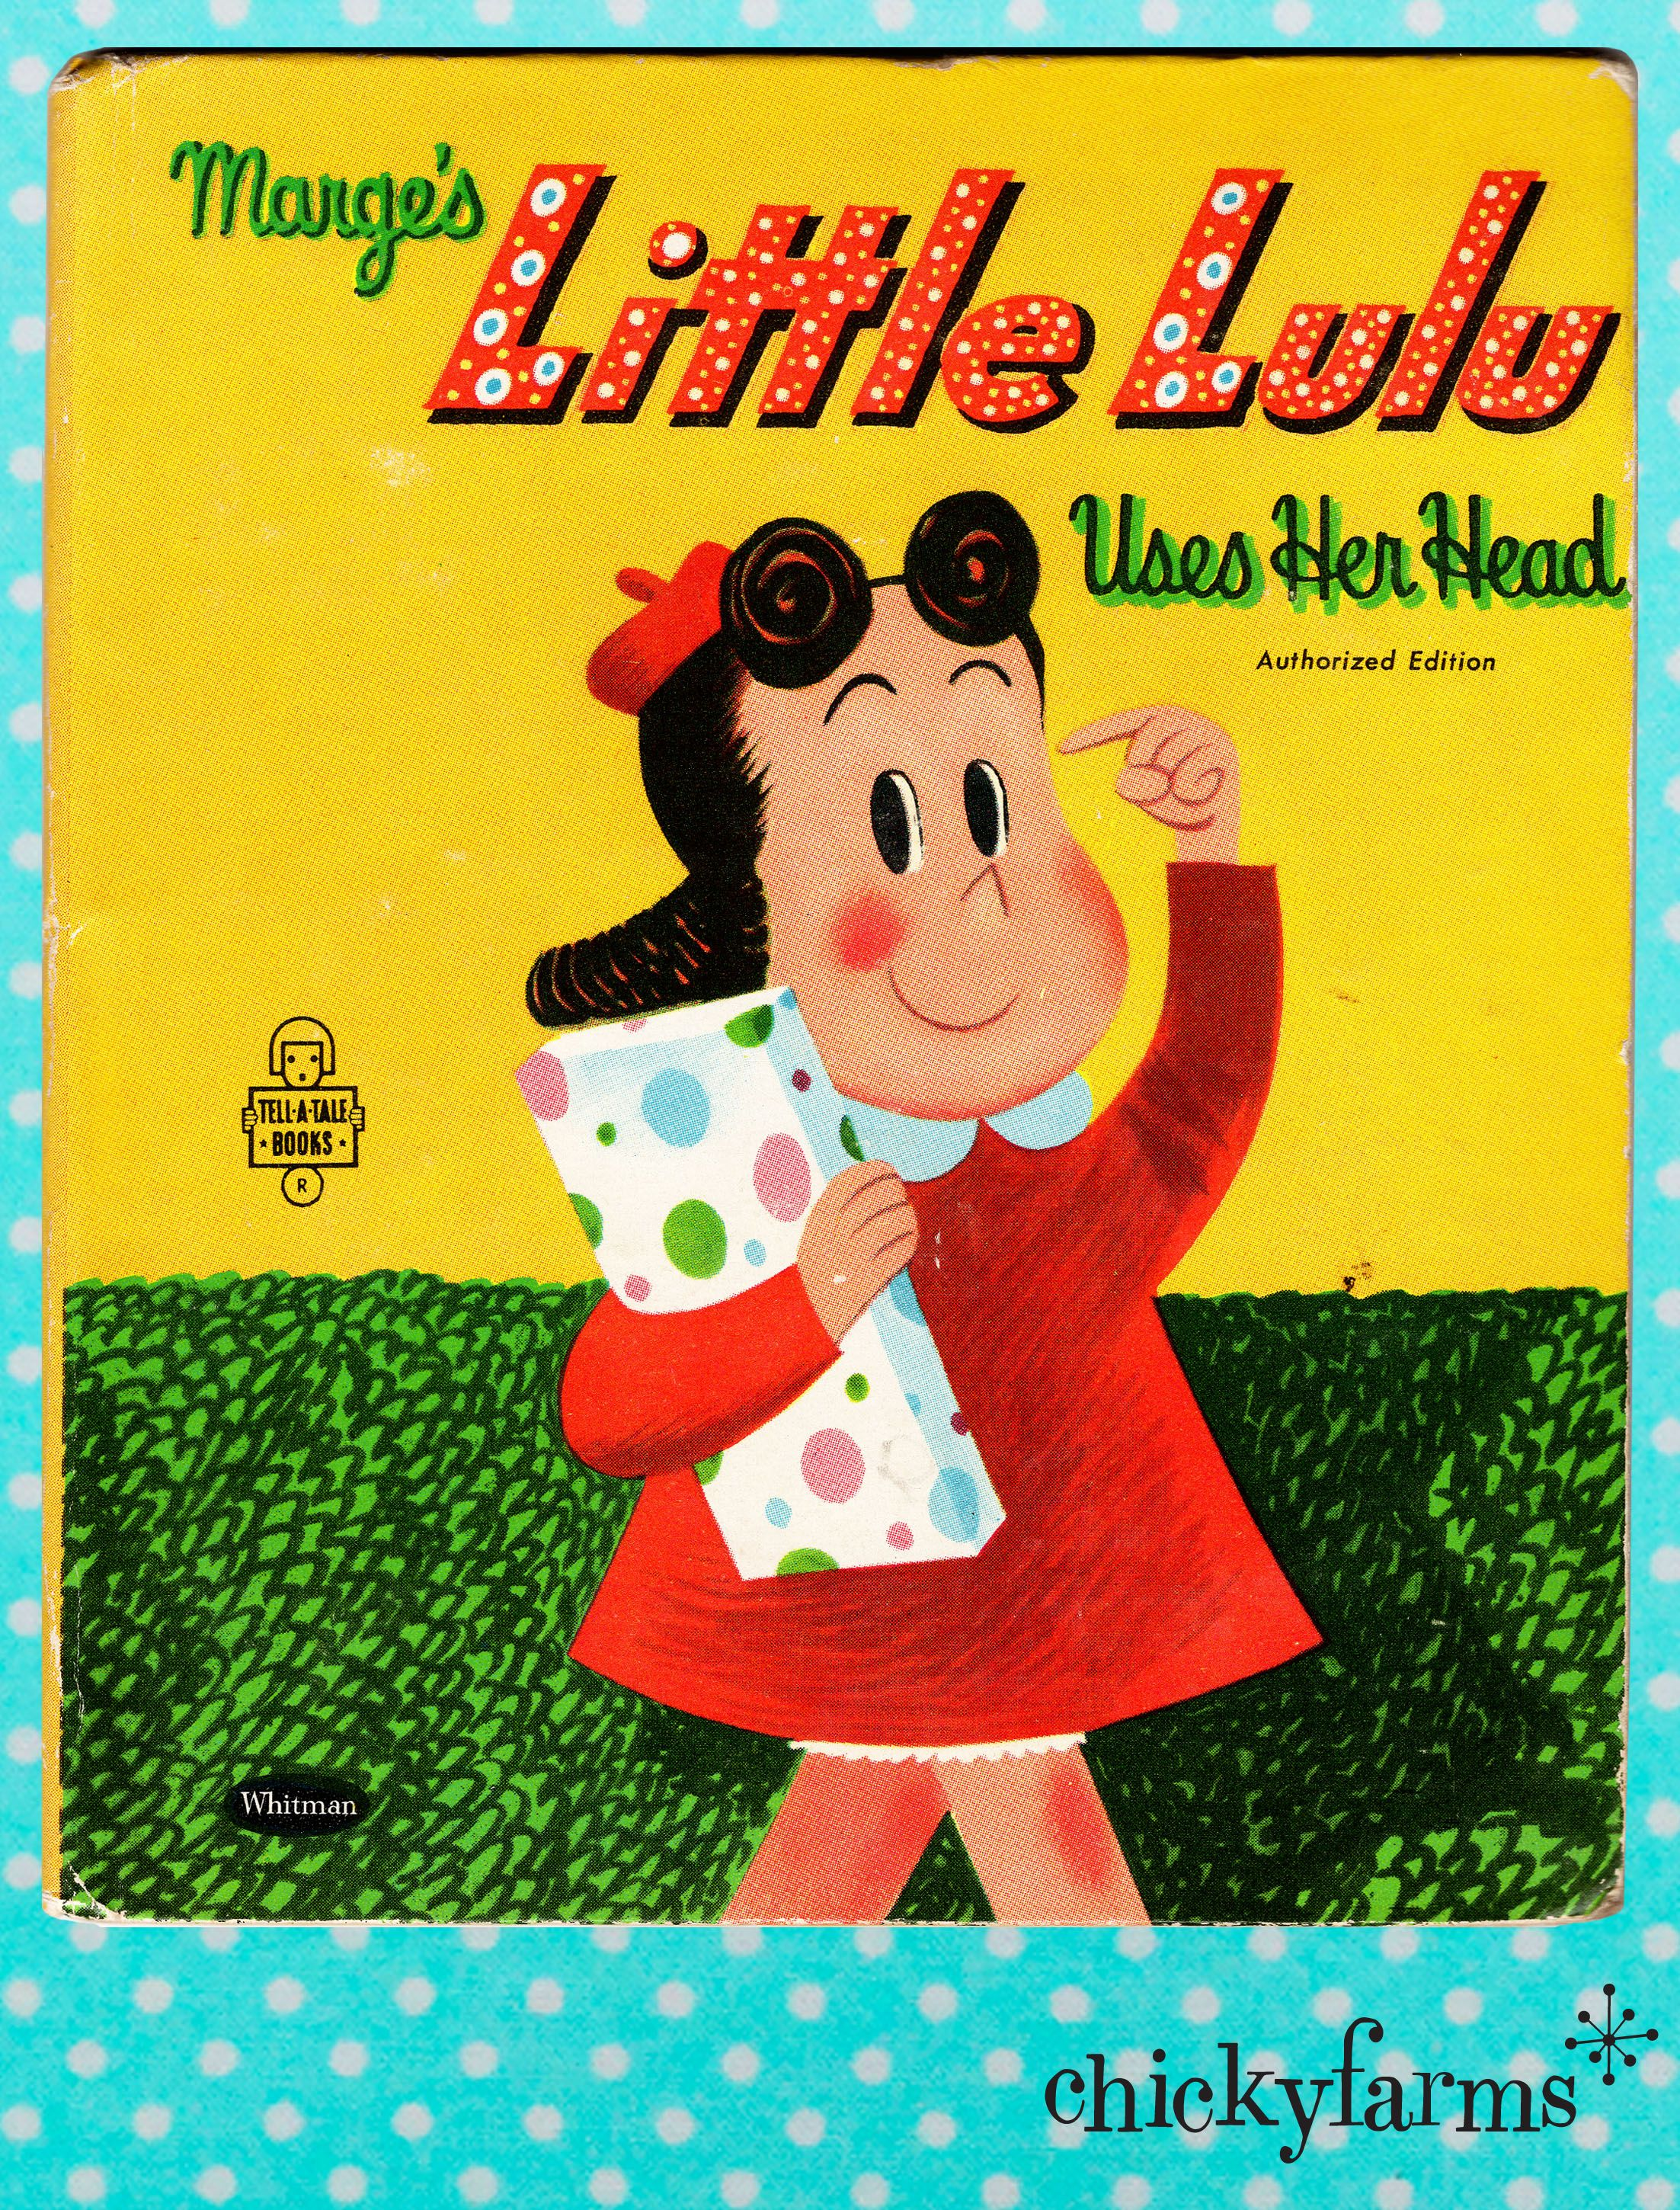 Whitman hot wheels coloring book - 1950 S Vintage Children S Book Marge S Little Lulu Uses Her Head Whitman Tell A Tale